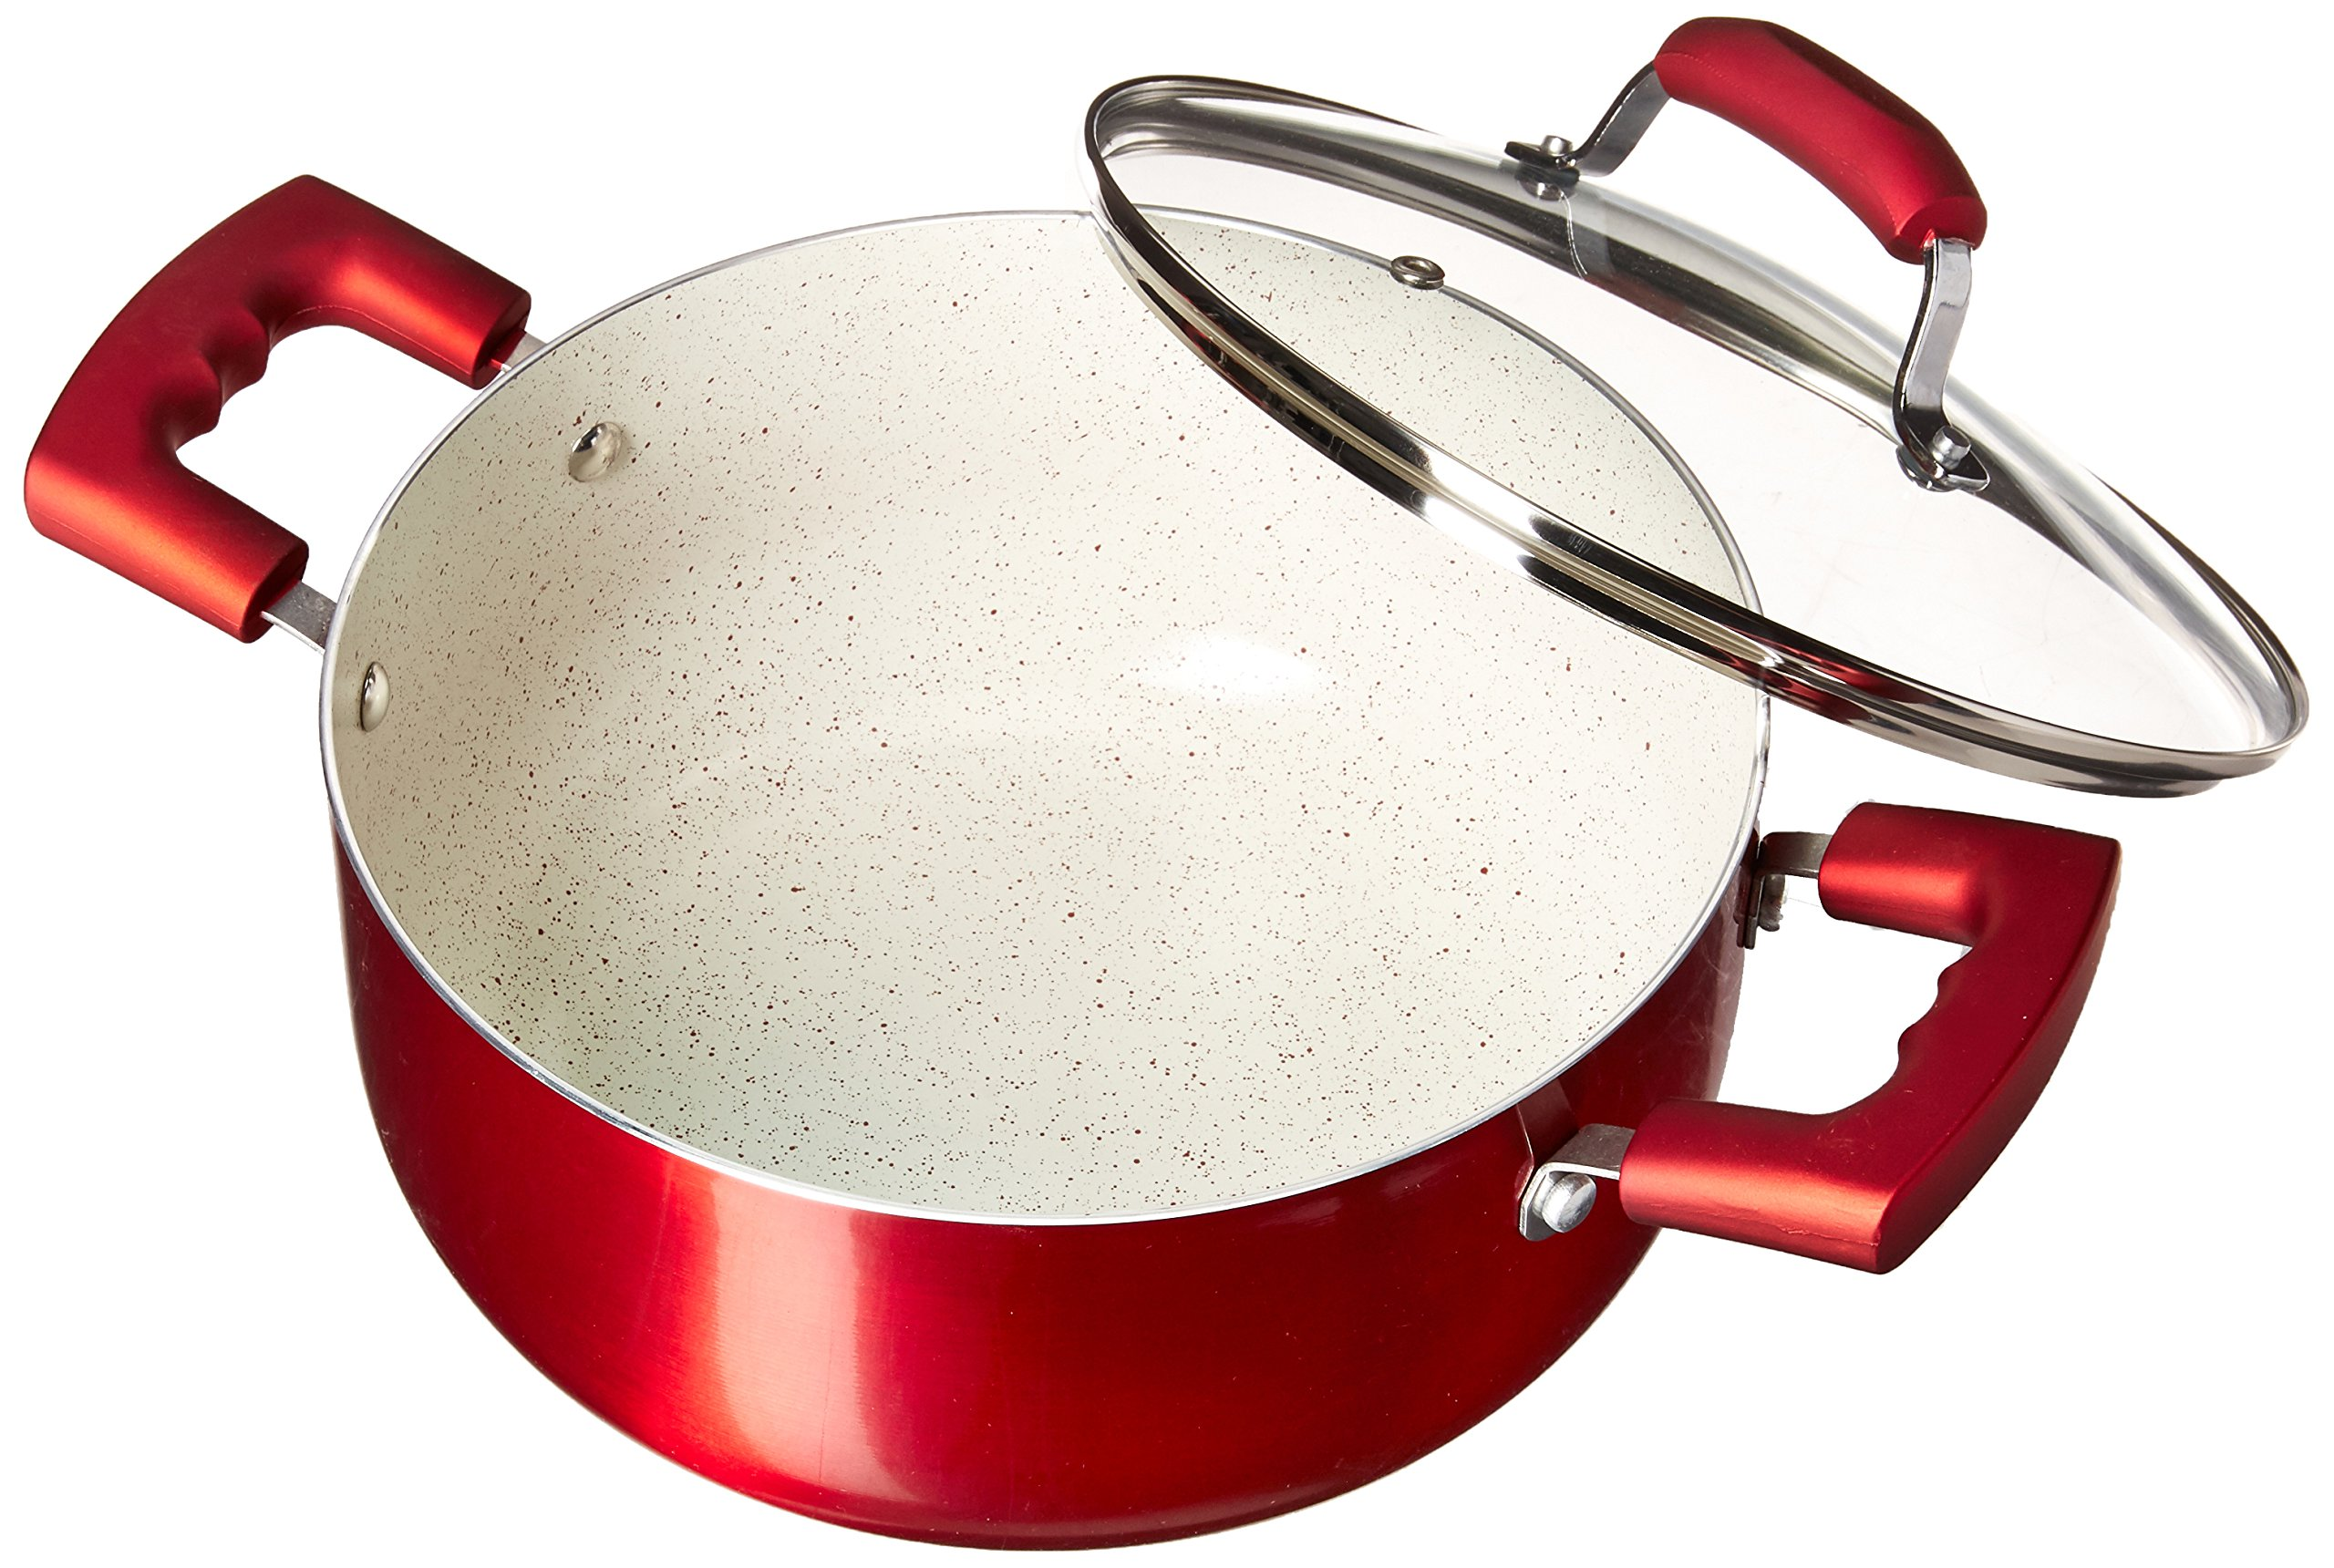 IMUSA USA IMU-25074 4.9Qt Ruby Red Nonstick Dutch Oven with Glass Lid and Soft Touch Handles by Imusa